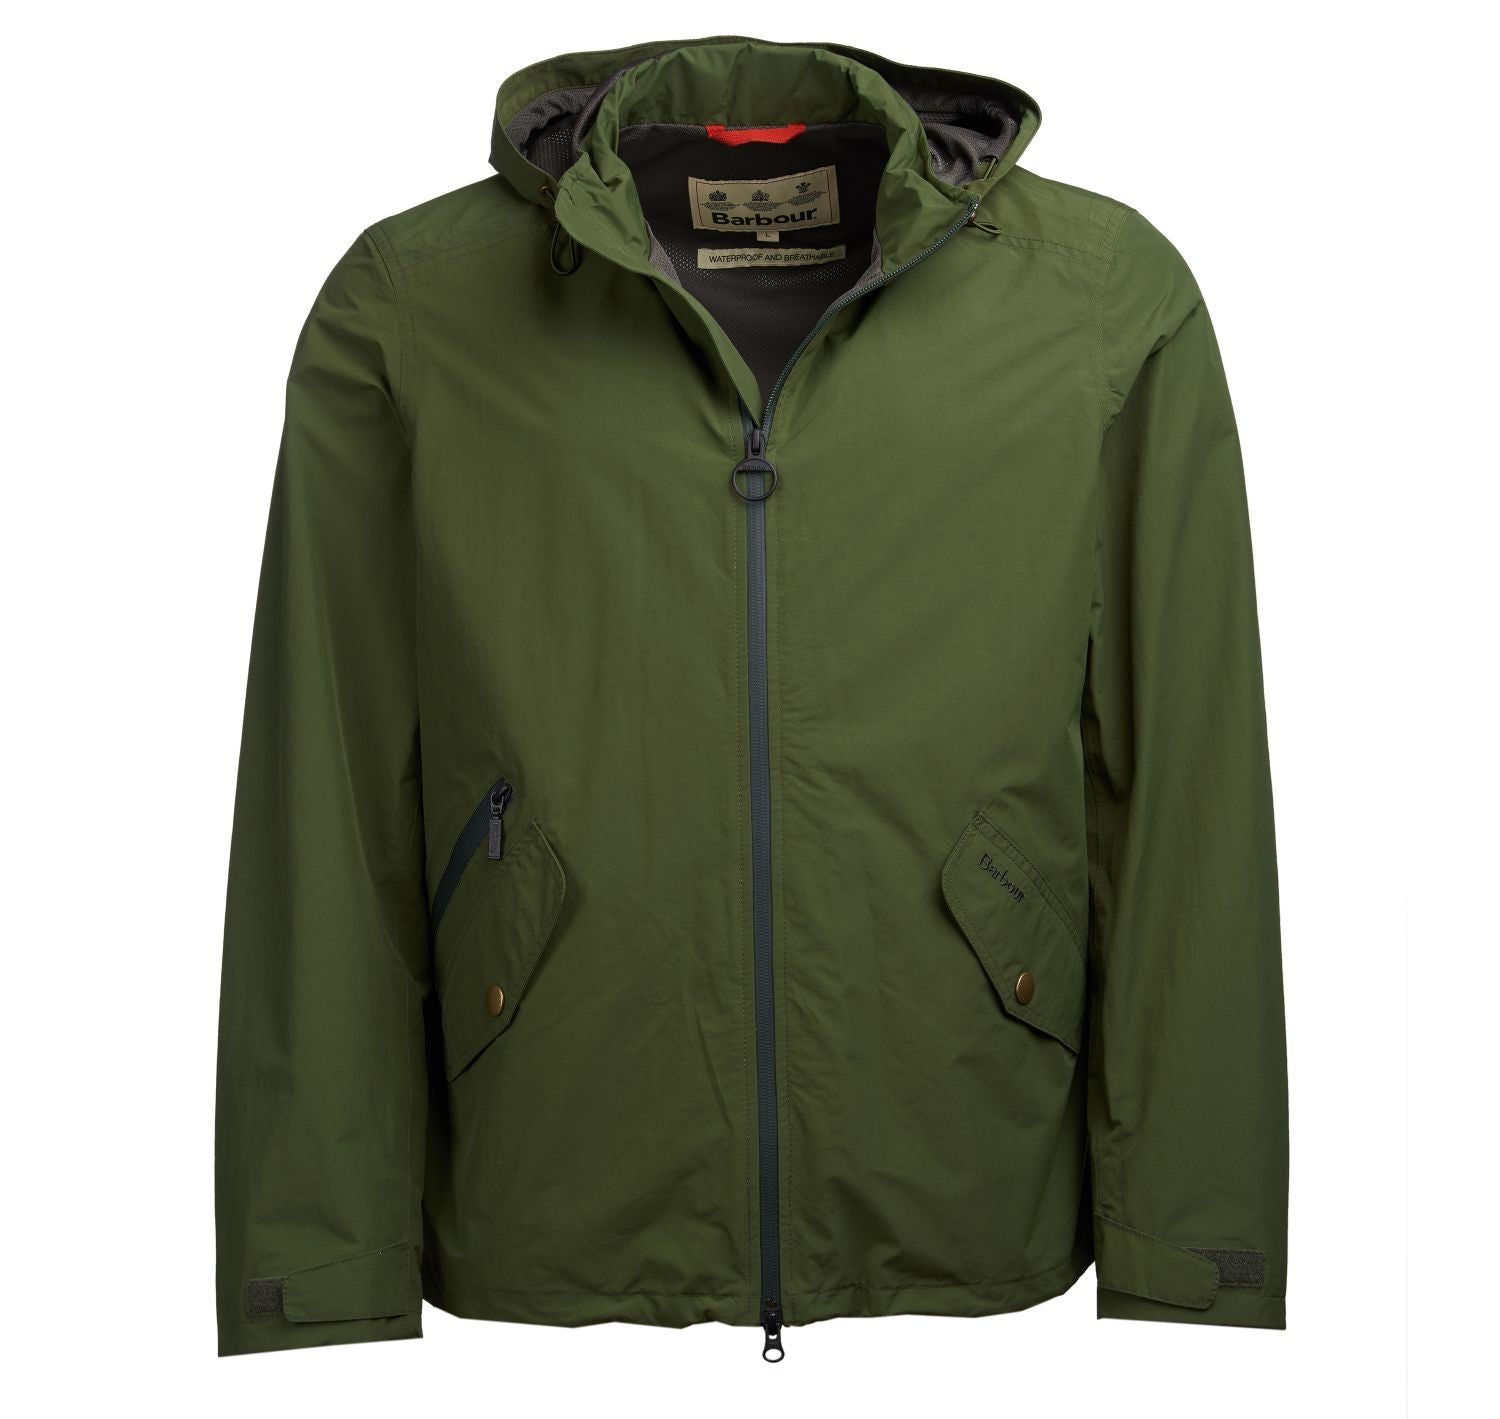 Barbour Rosedale Waterproof Rain Jacket - SALE - North Shore Saddlery